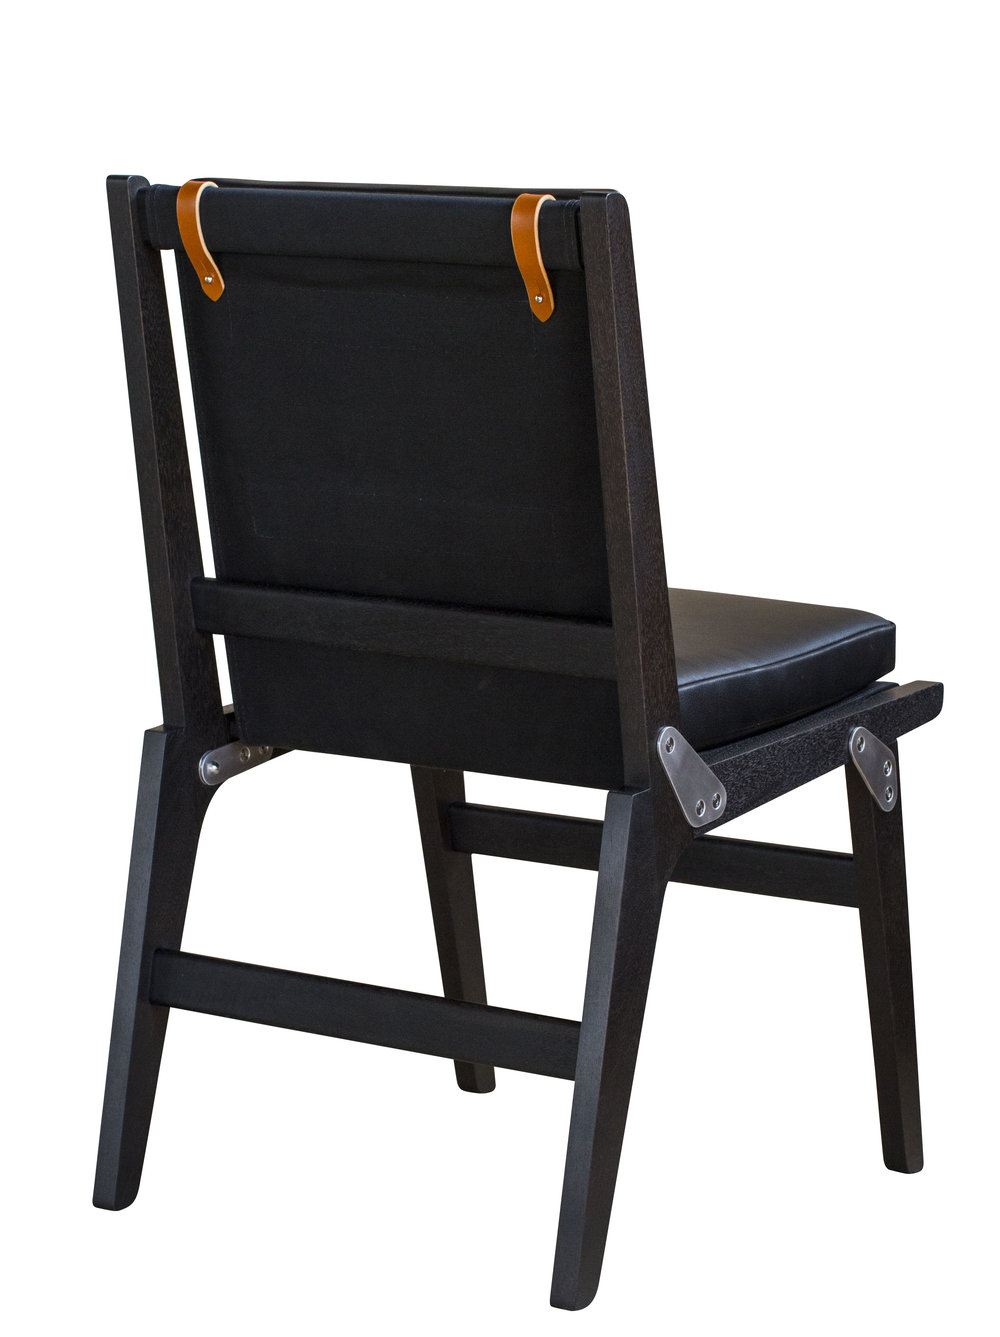 O.F.S. Folding Dining Chair